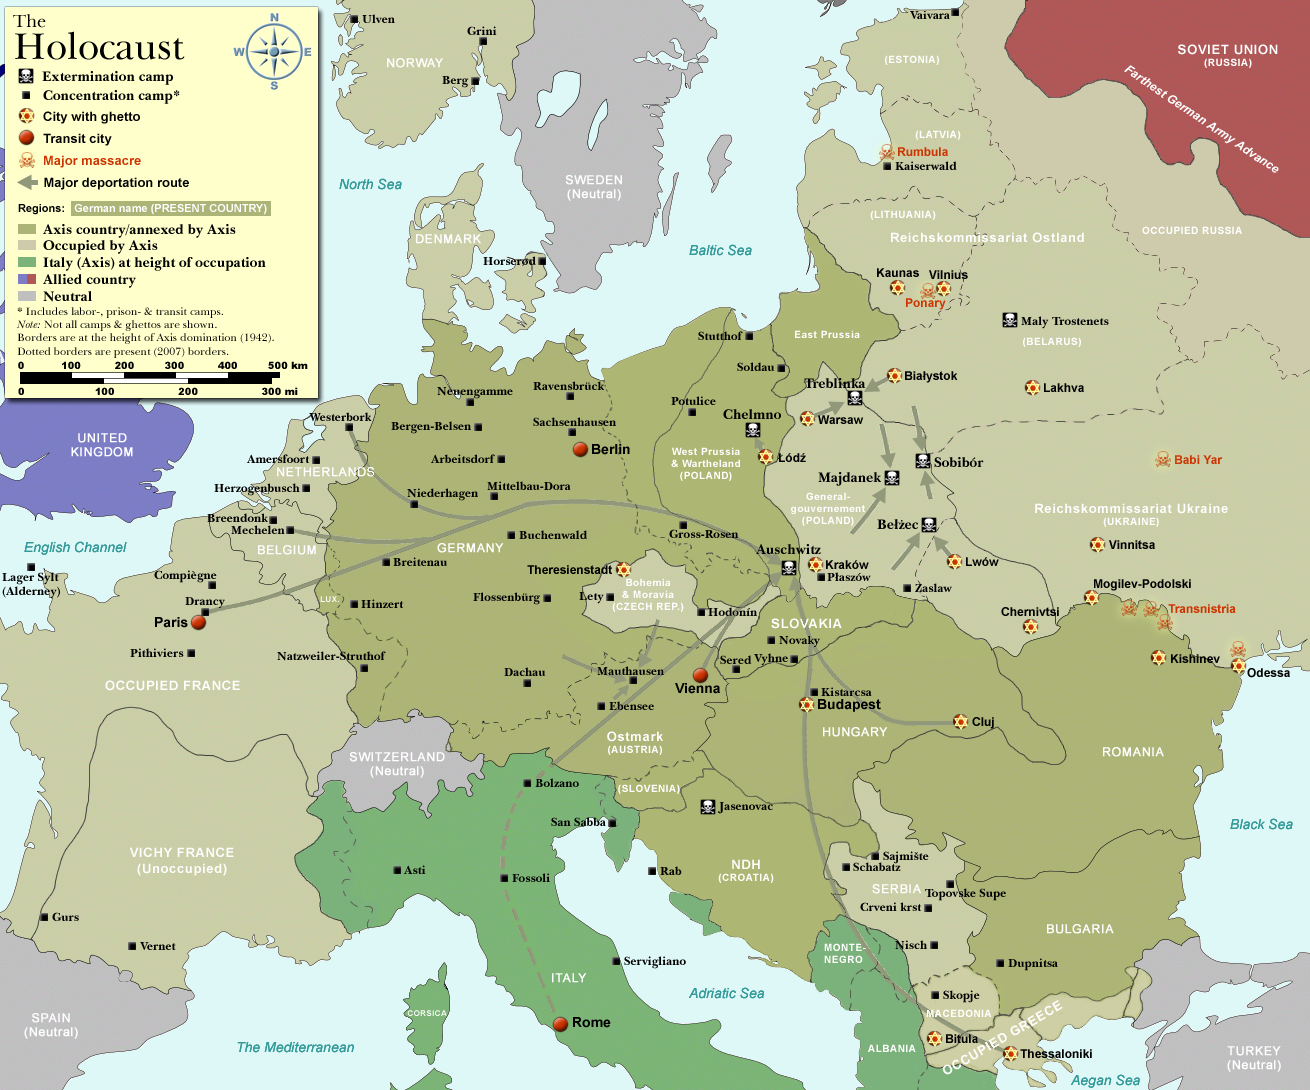 File:WW2-Holocaust-Europe.png - Wikimedia Commons